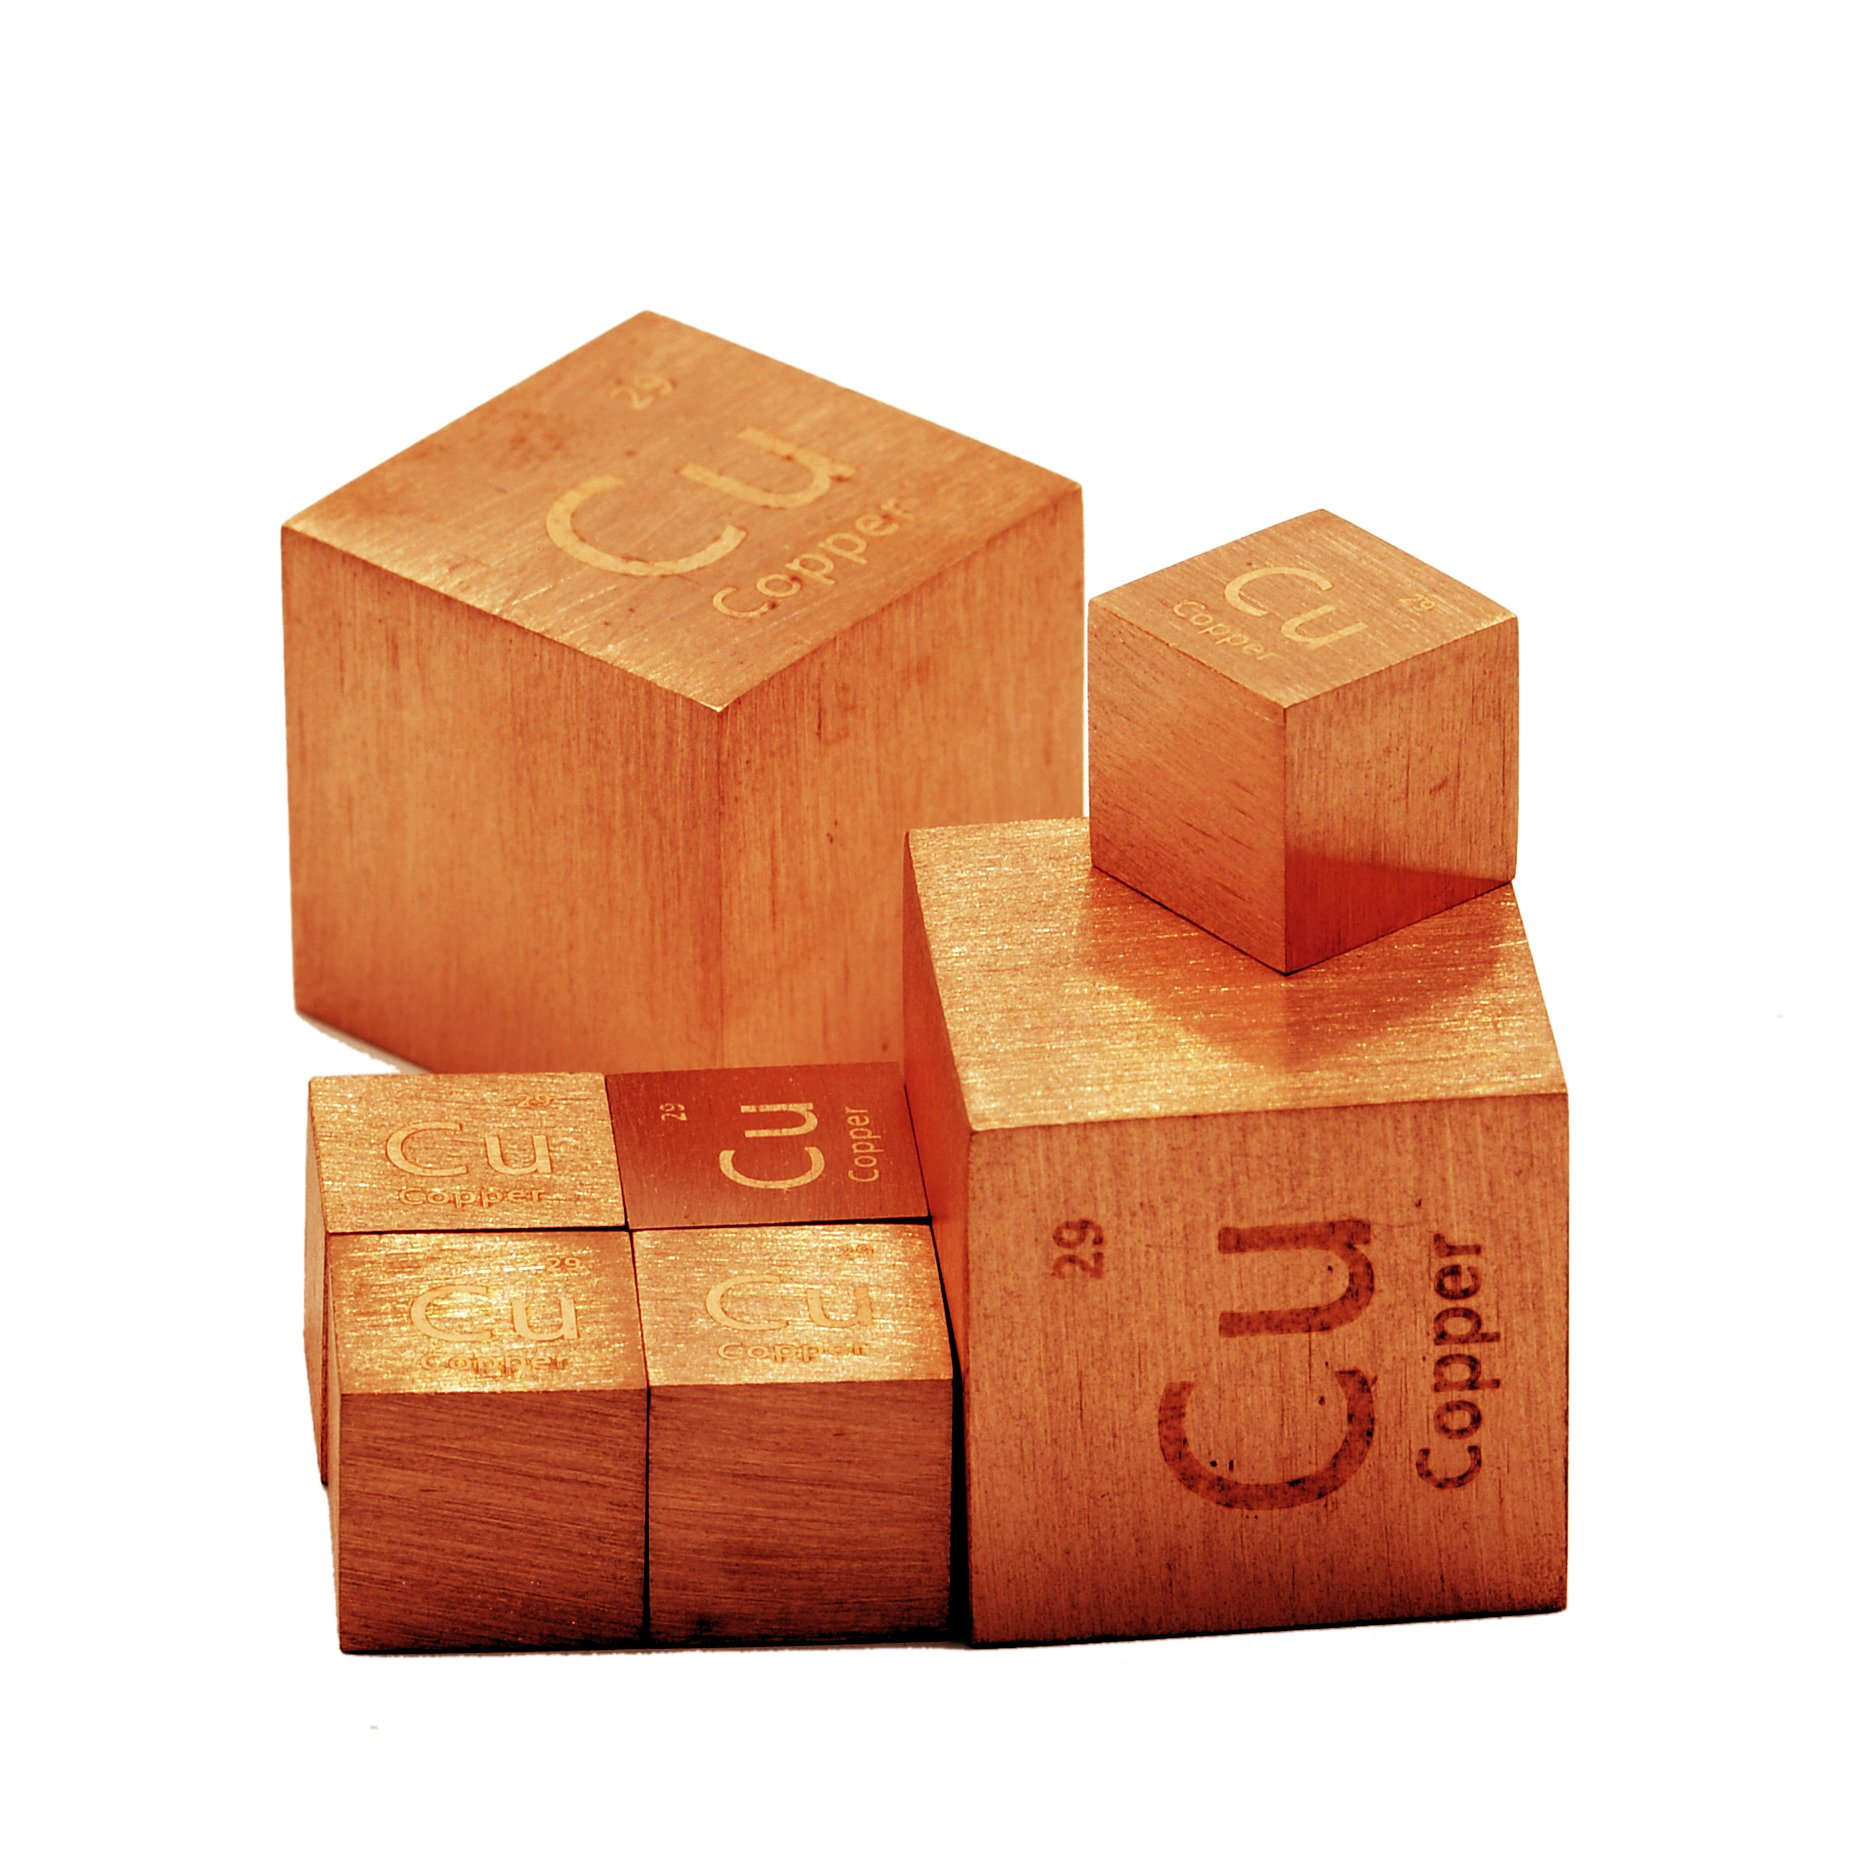 Copper Metal 1 Inch Density Cube 99.95% Pure Element Collection